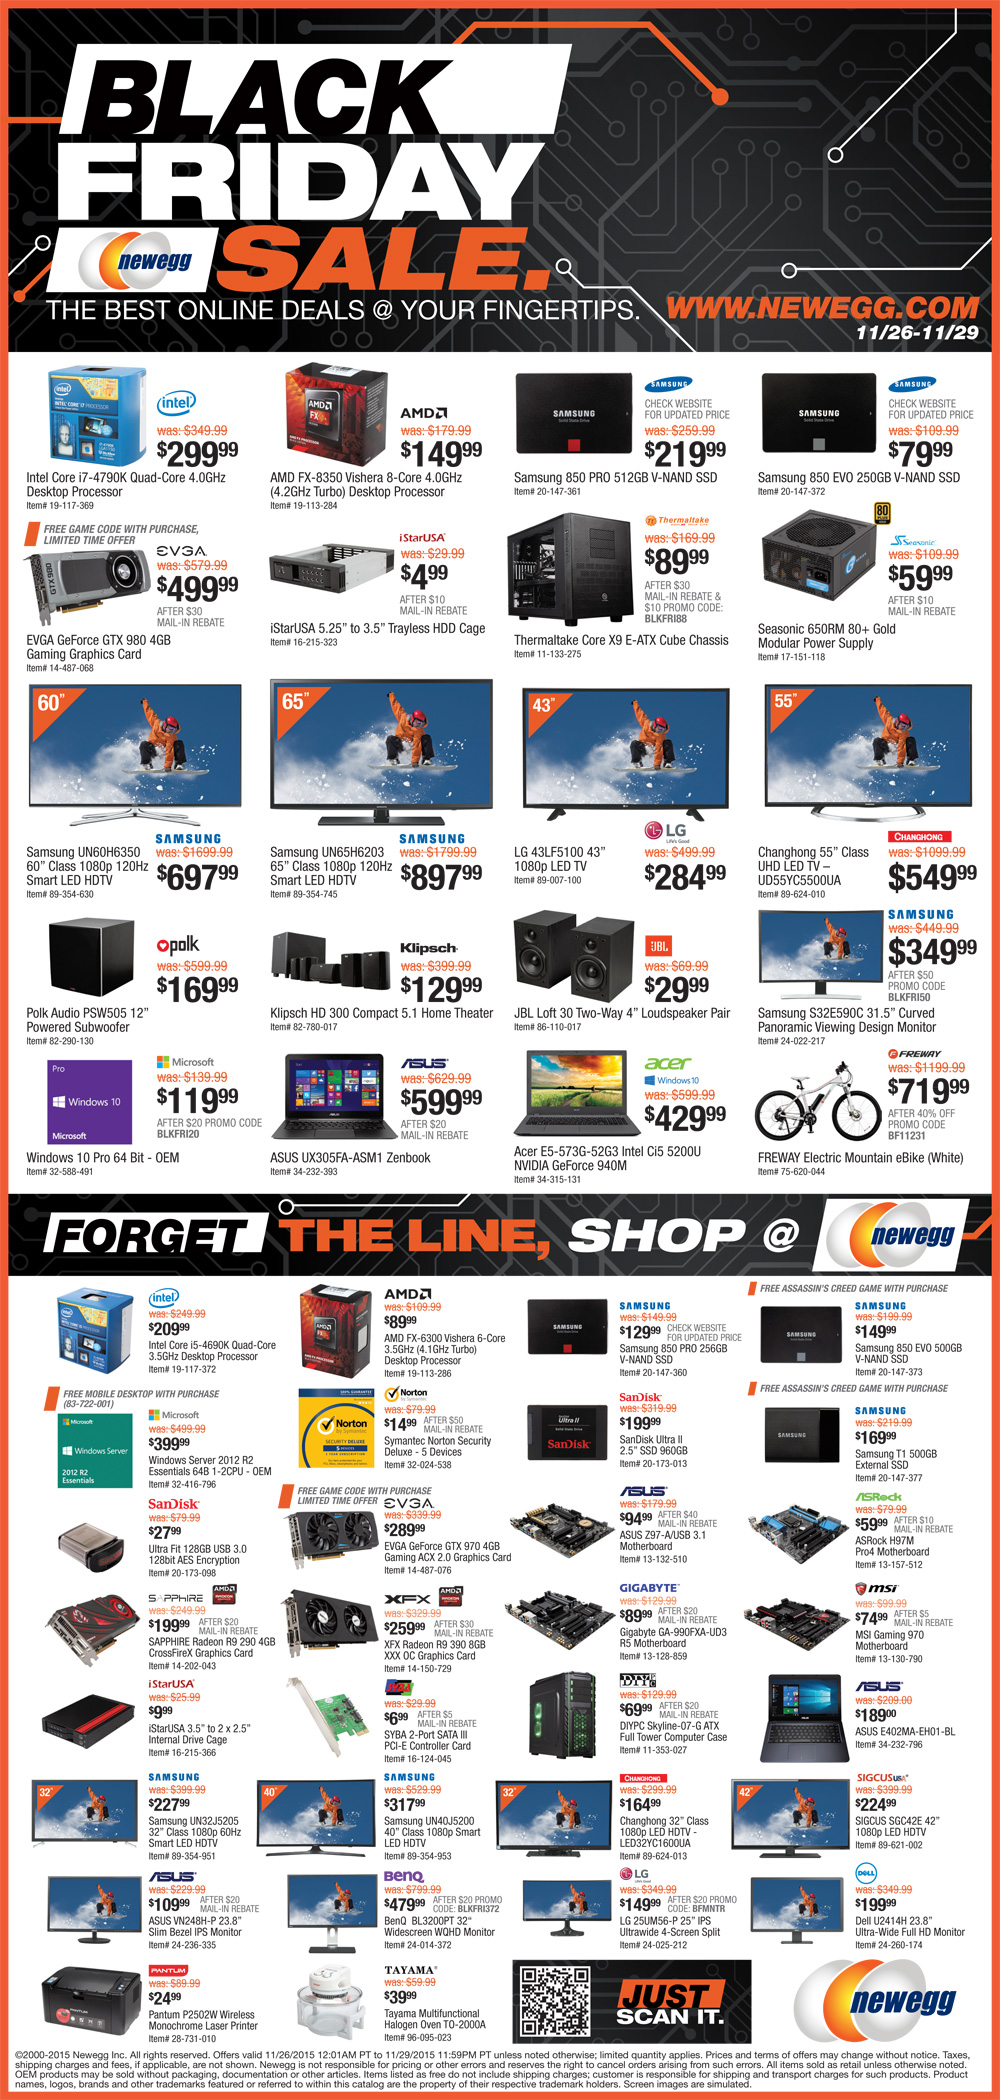 Newegg Updates: The Black Friday ad is now live, but we are still expecting a Cyber Monday circular. Ad Scan: We posted the page Newegg Black Friday ad on November 8, which is actually two days earlier than last year. Newegg's ad is dubbing this its ultimate sale with thousands of deals more being included at vegamepc.tk5/5(1).